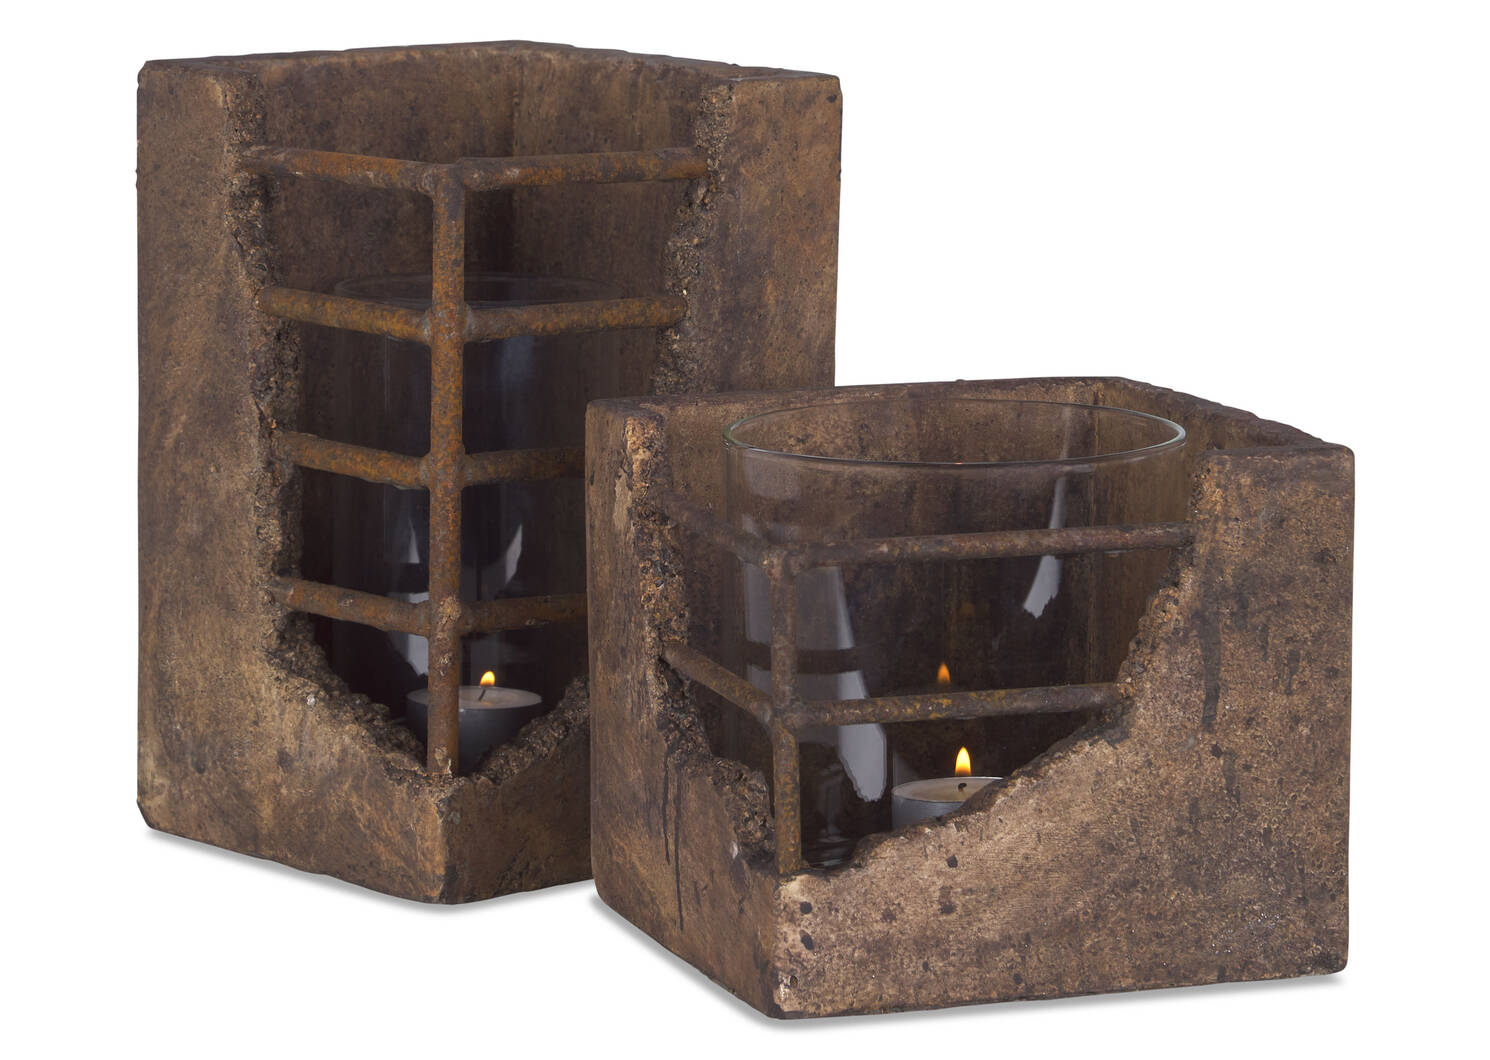 Bowron Candle Holders